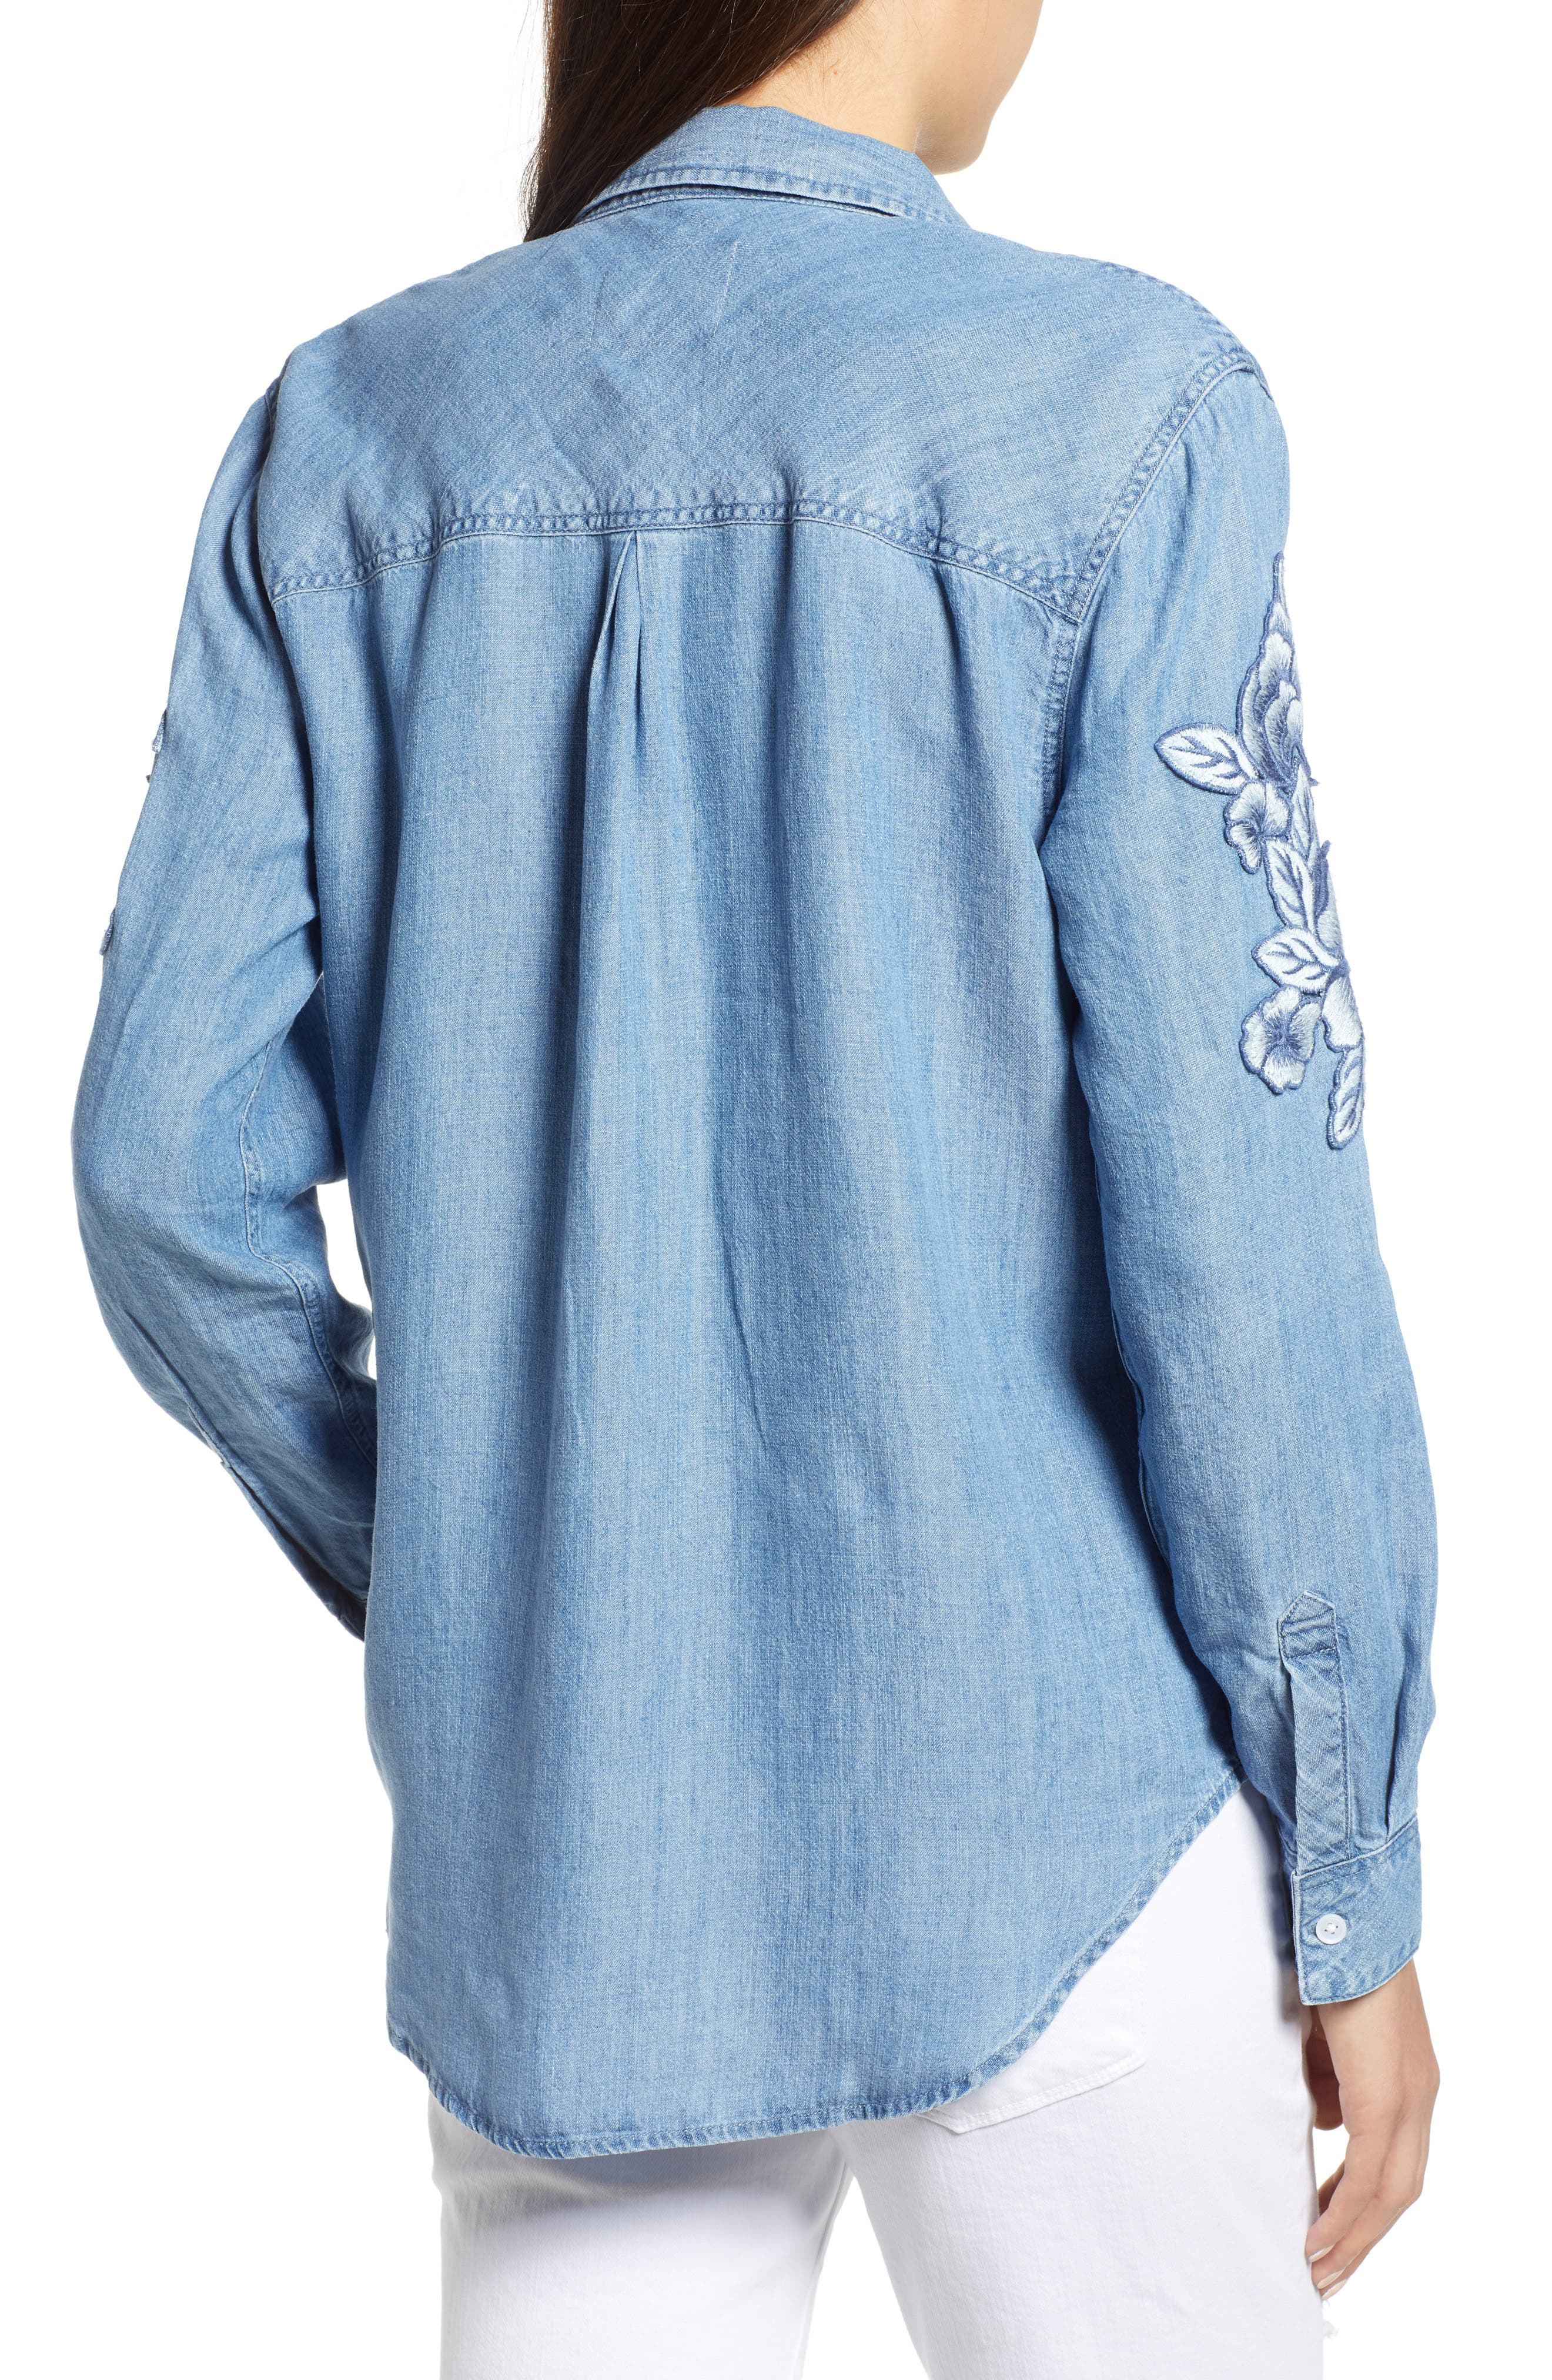 RAILS,                             Ingrid Embroidered Chambray Shirt,                             Alternate thumbnail 2, color,                             493